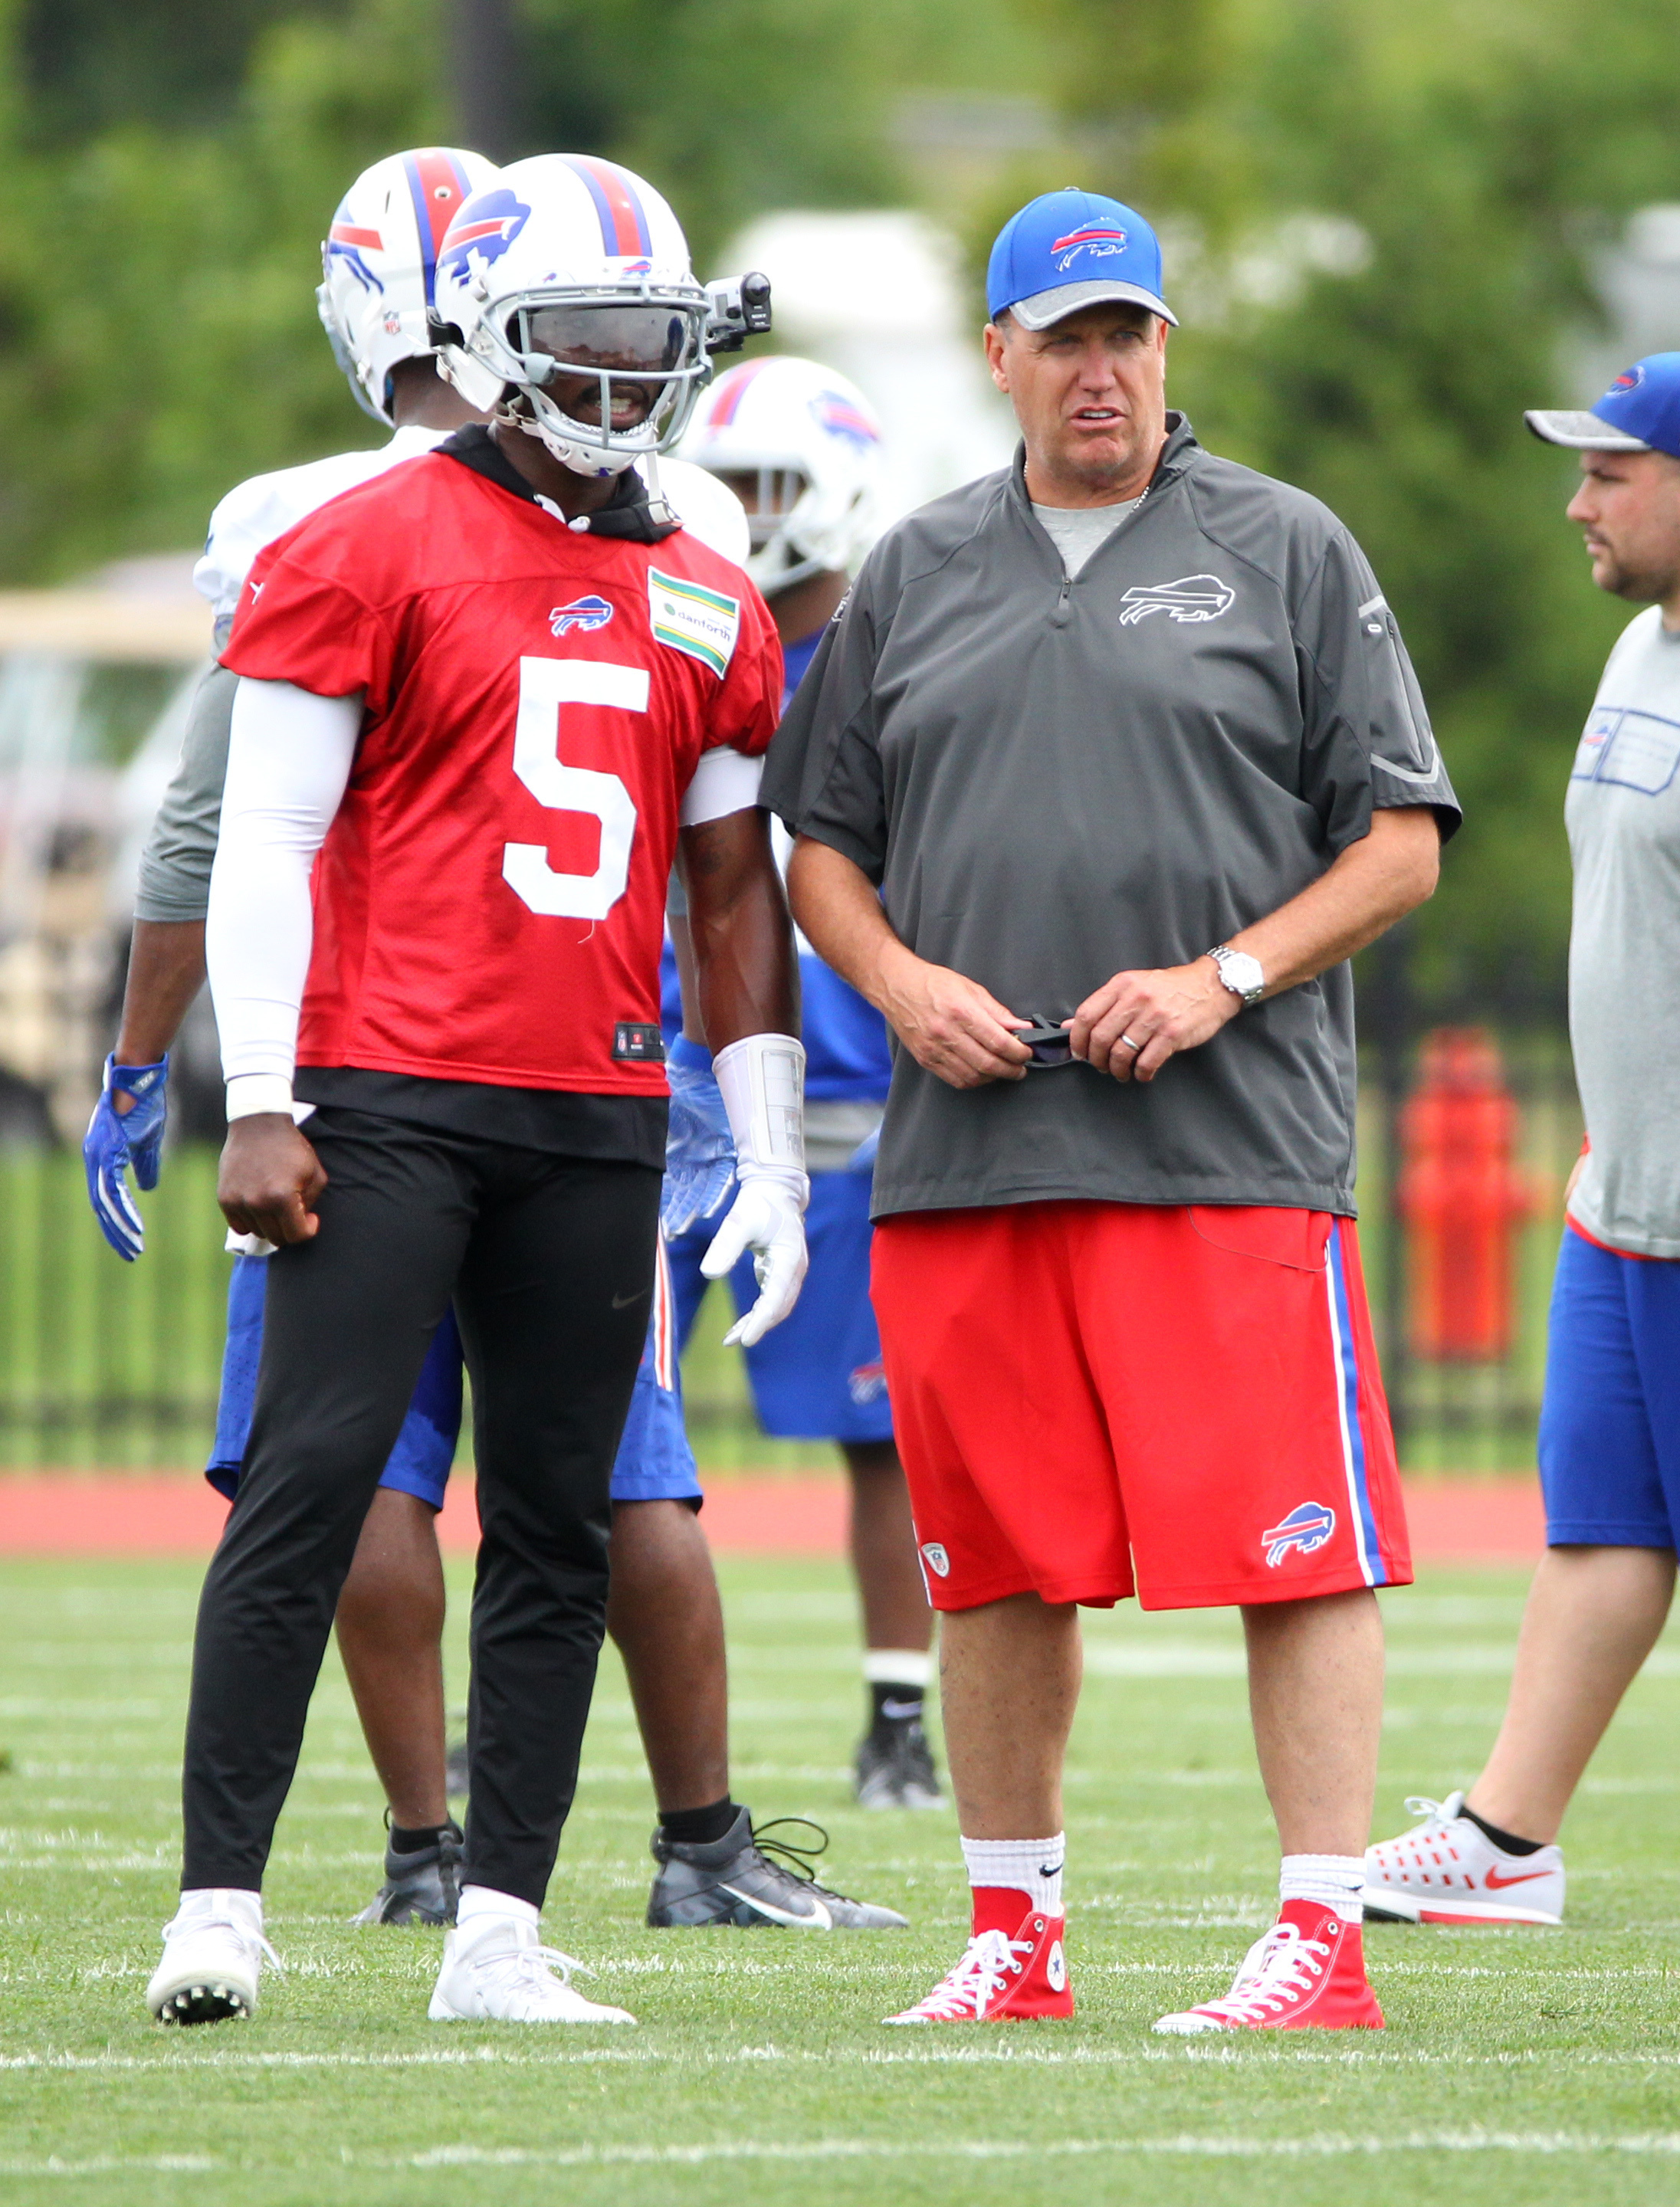 Buffalo Bills head coach Rex Ryan talks to Tyrod Taylor (5) during NFL football training camp in Pittsford, N.Y., Saturday, July 30, 2016. (AP Photo/Bill Wippert)